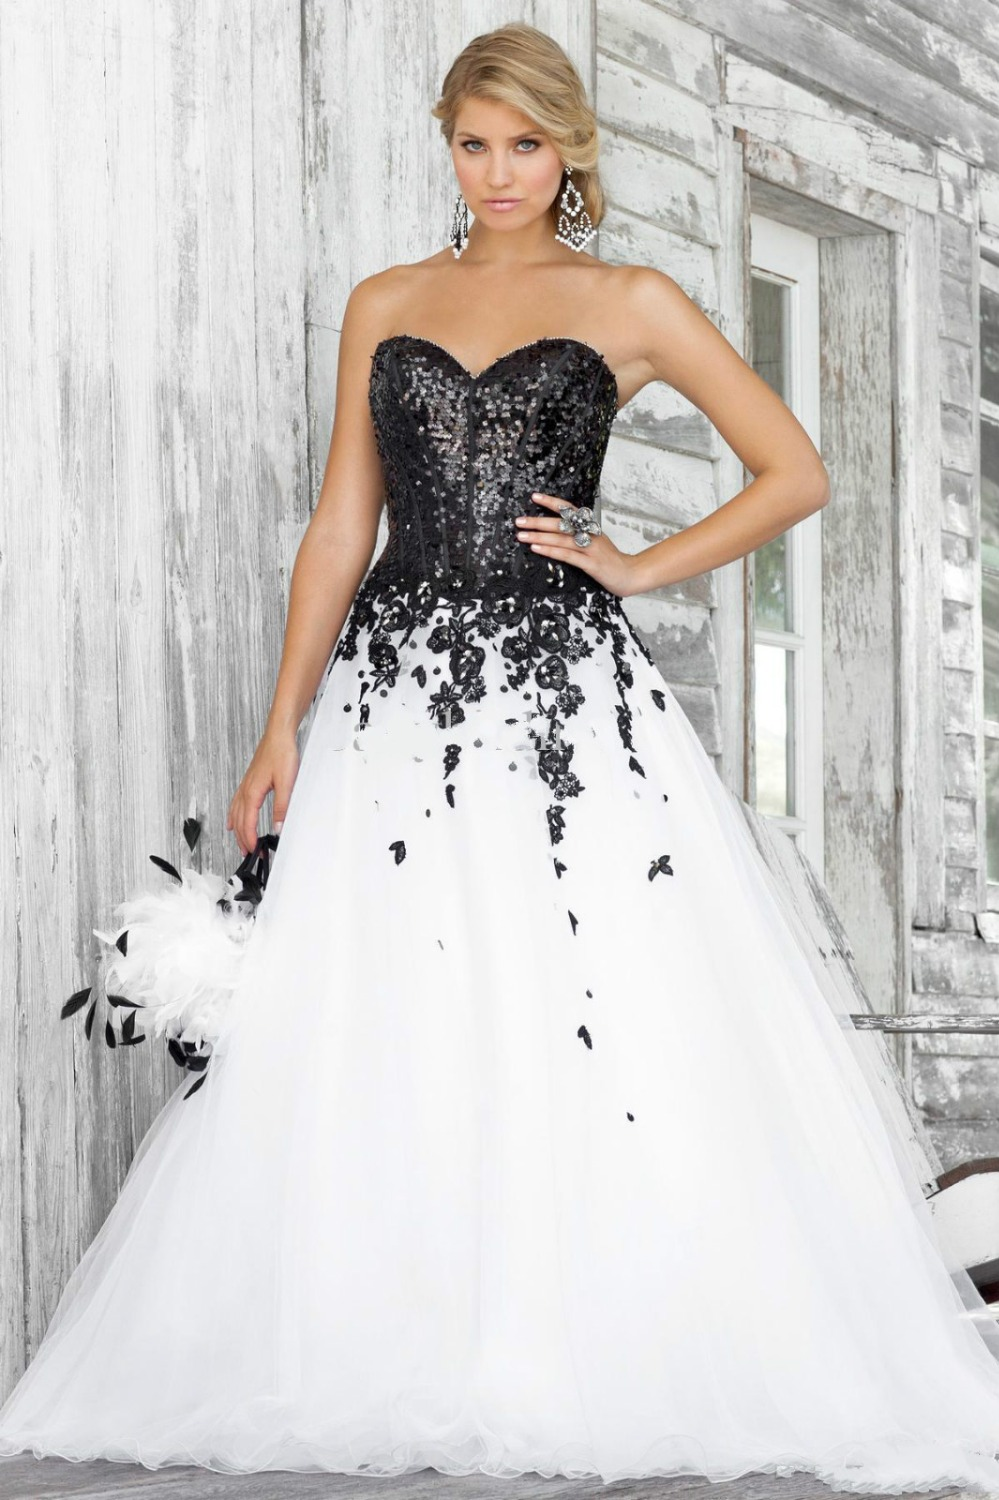 Black White Dress Sexy Sweetheart Sequins Applique Flowers Petals